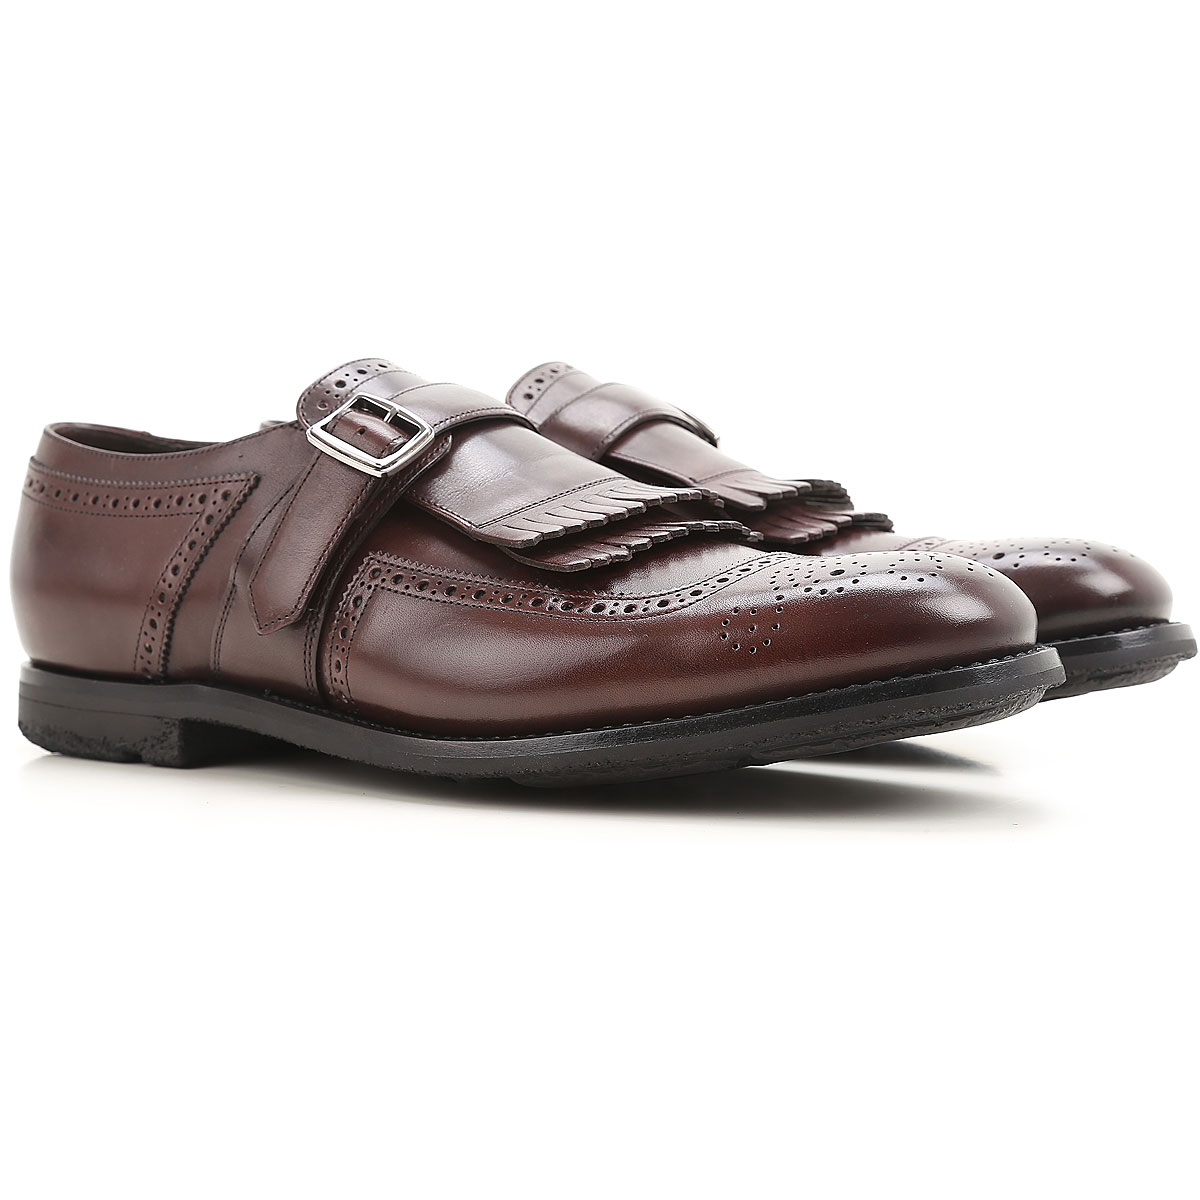 Image of Church's Monk Strap Shoes for Men, Ebony, Leather, 2017, 10 8.5